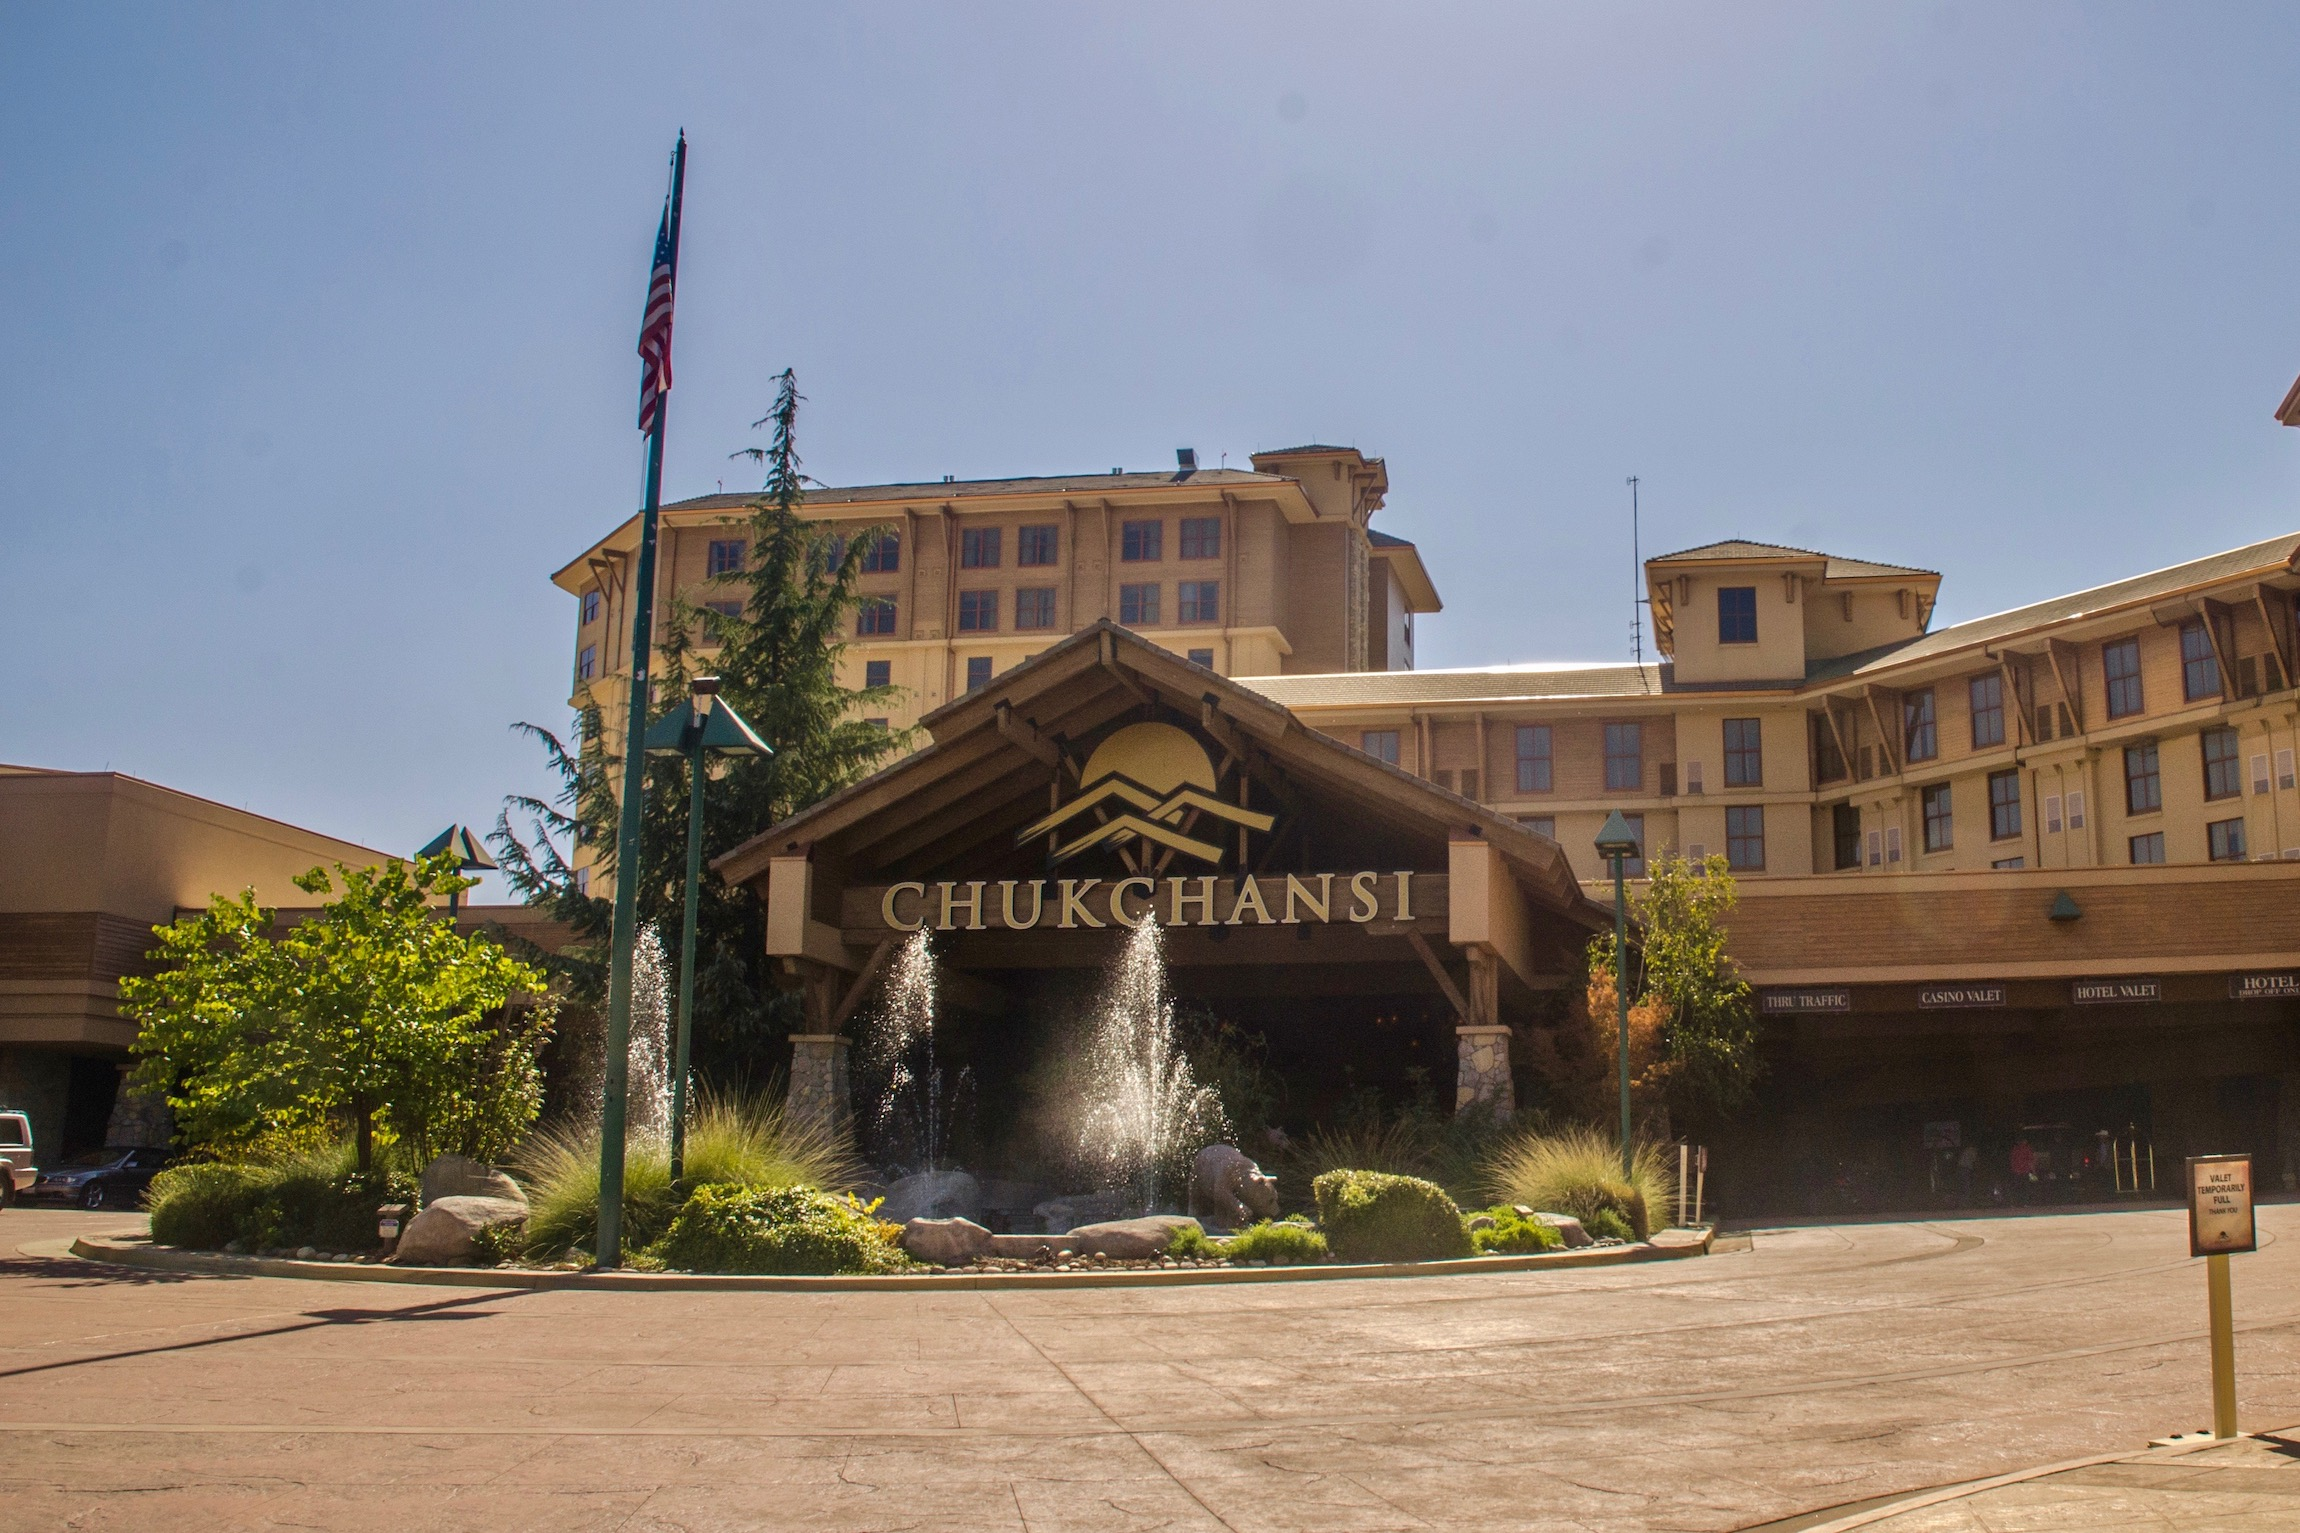 Chukchansi Tribe secures dismissal of lawsuit seeking $21 million from casino